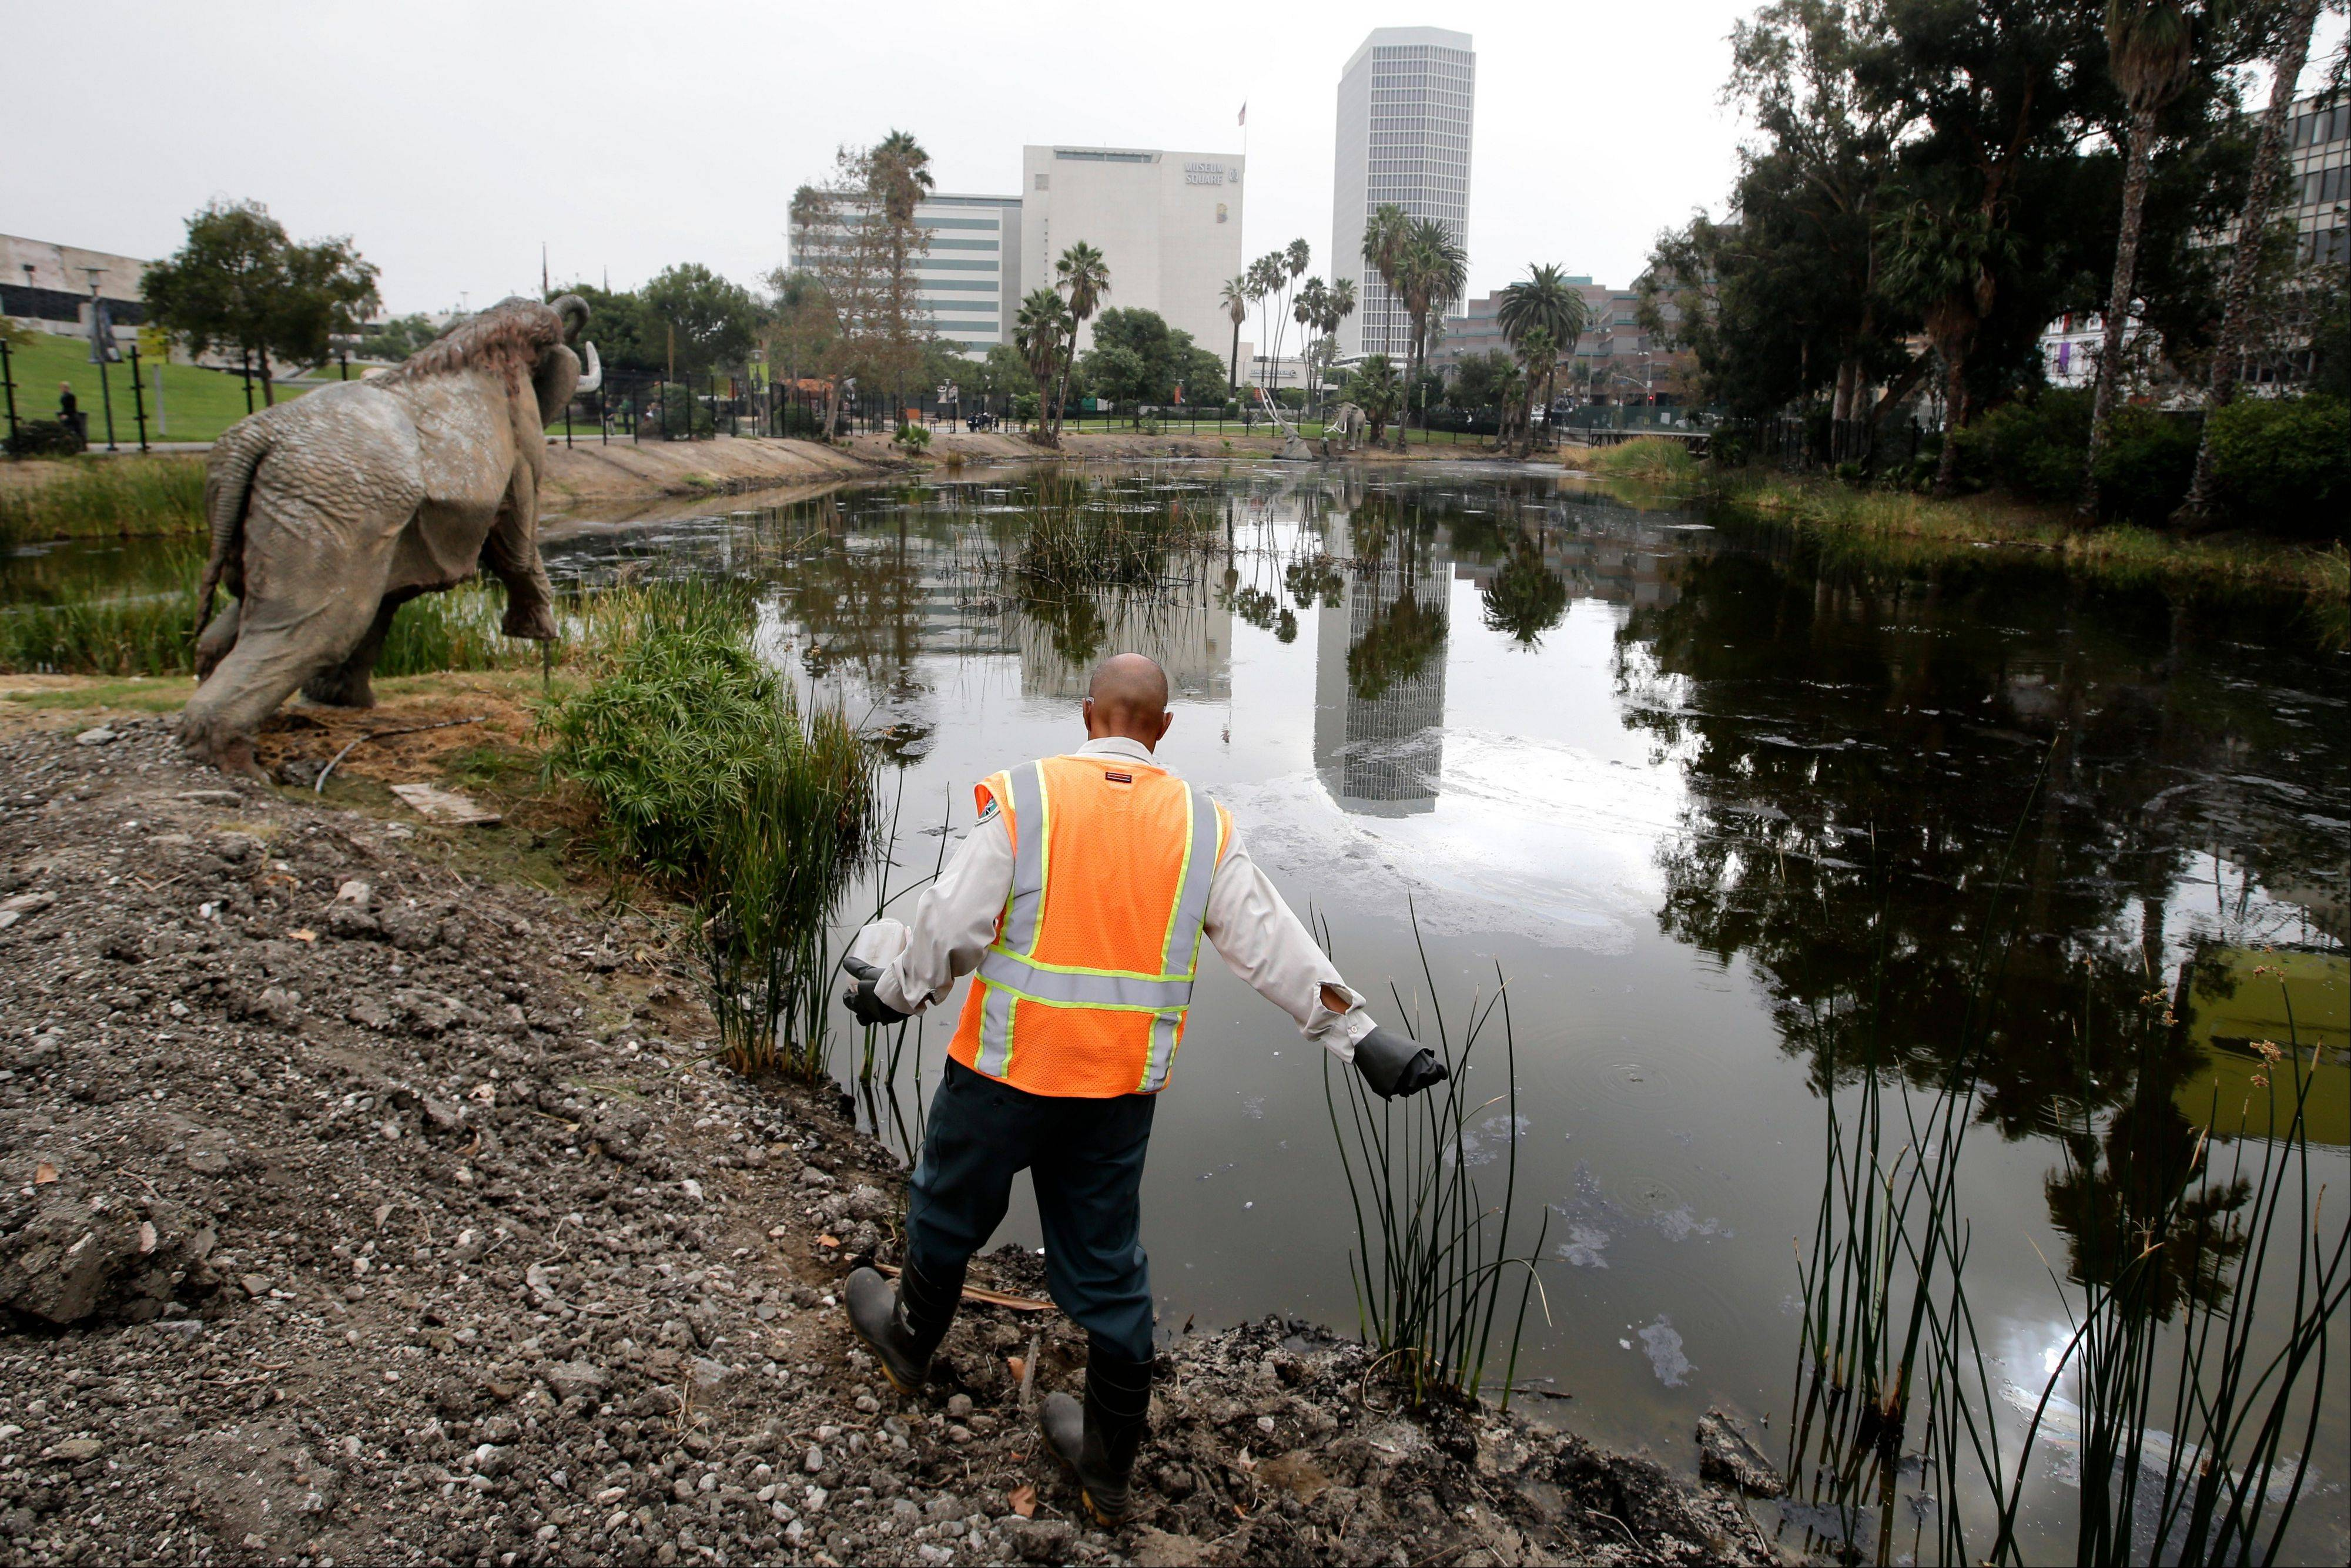 Victor Ball sprinkles mosquito repelling granules along Lake Pit outside the George C. Page Museum at the La Brea Tar Pits on Wednesday in Los Angeles. On Monday, the museum celebrates a century of excavation at the La Brea Tar Pits, considered the richest and most diverse collection of Ice Age fossils.